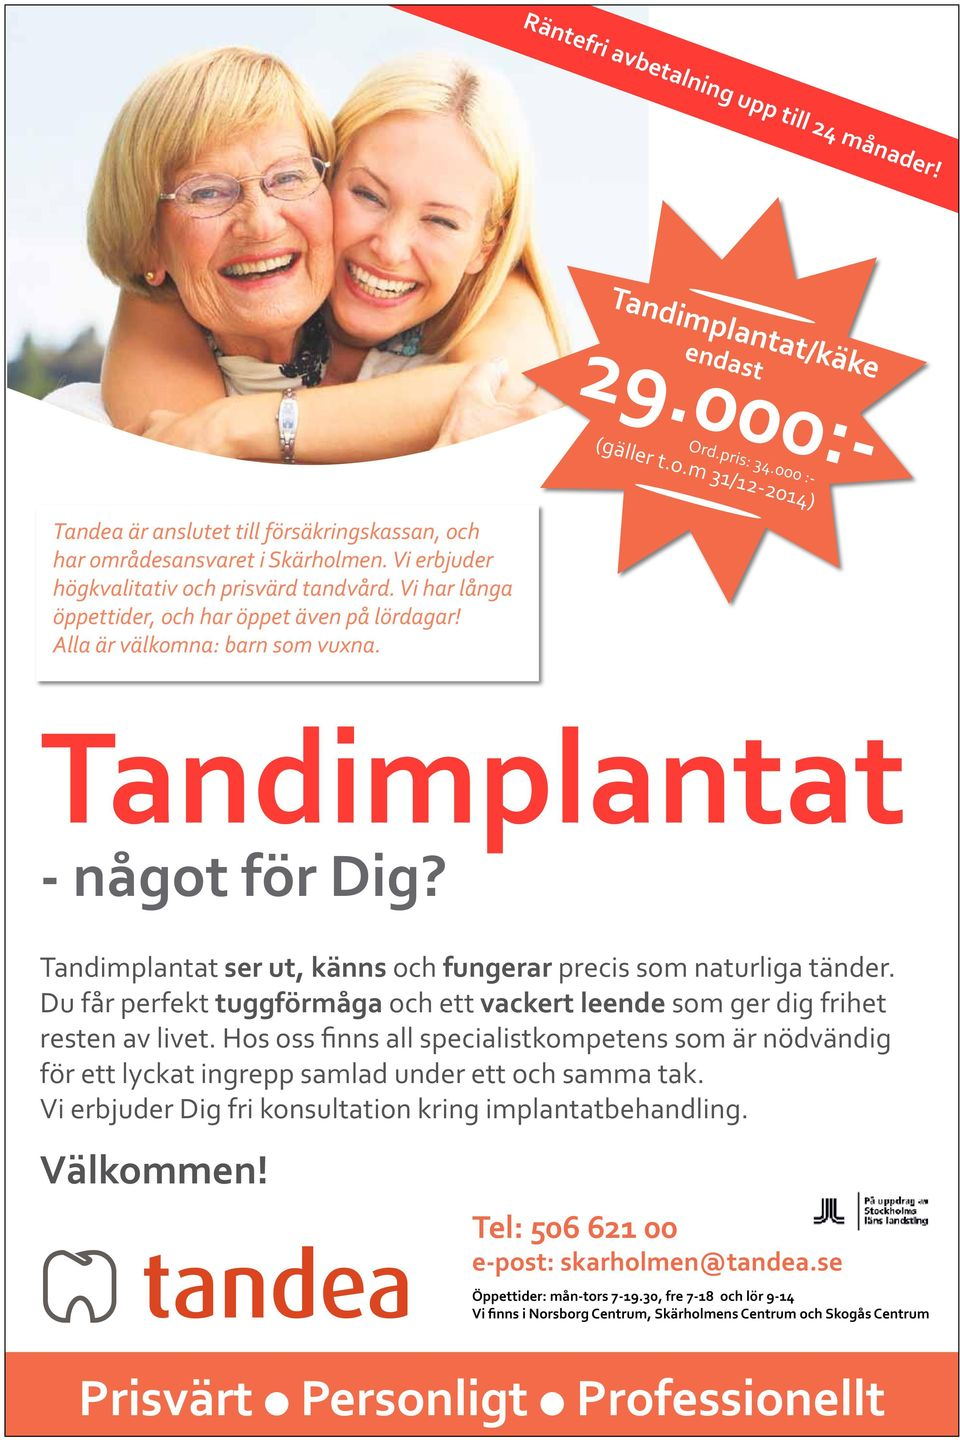 Mest Effektiva Datingsidor Bästa Gratis Interracial Dating Webbplatser Dalkarlså.